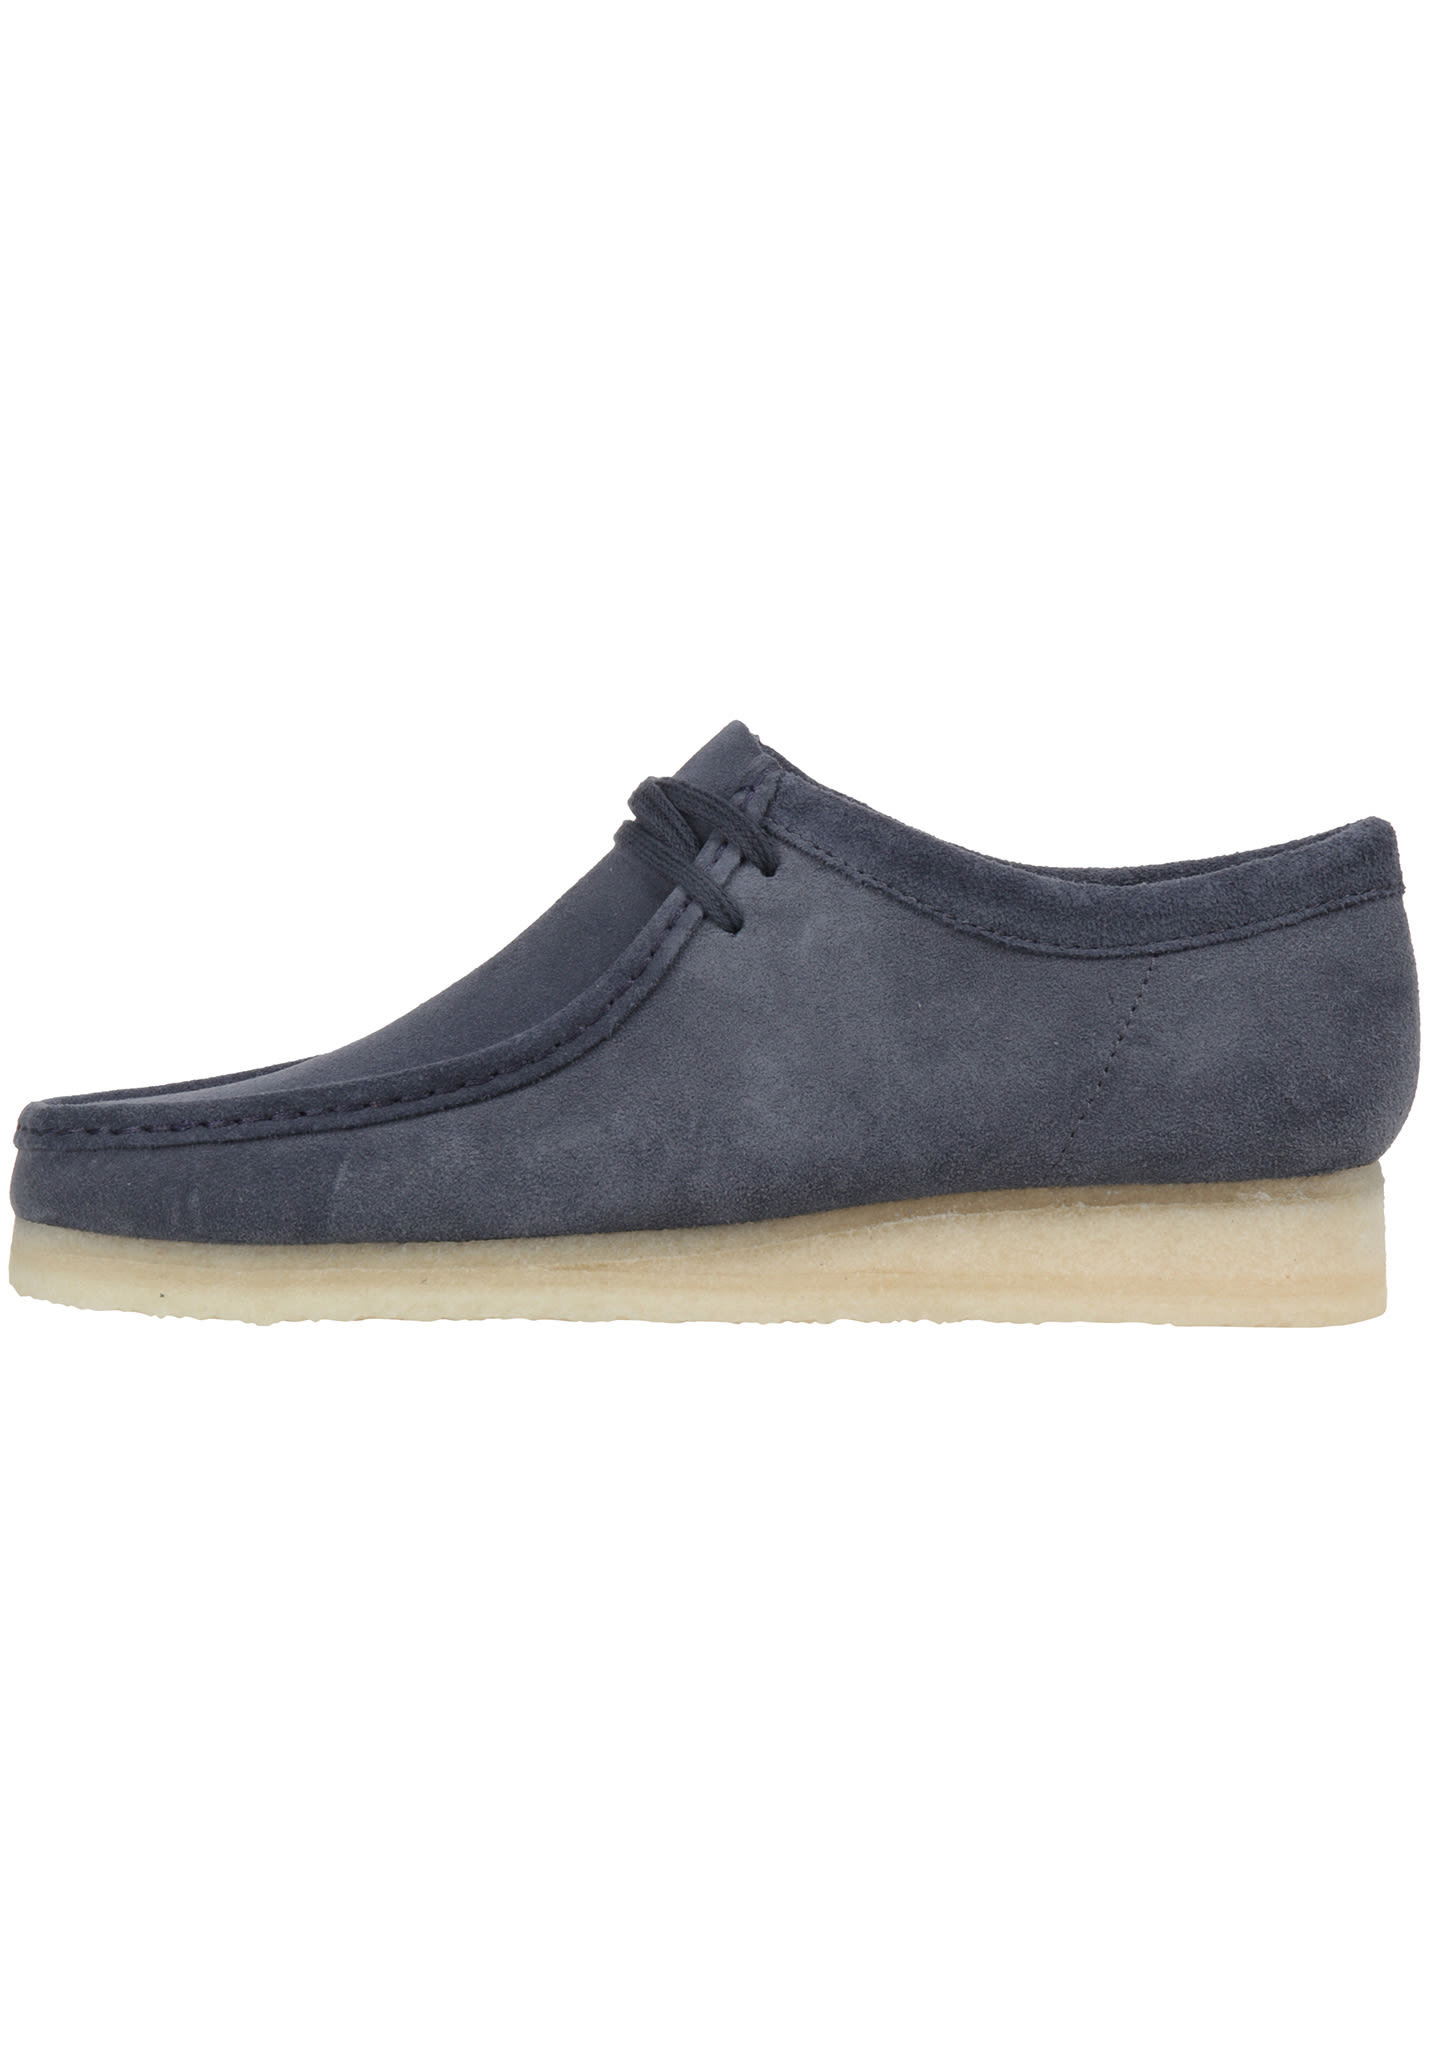 CLARKS ORIGINALS Wallabee Fashion Schuhe für Herren Blau